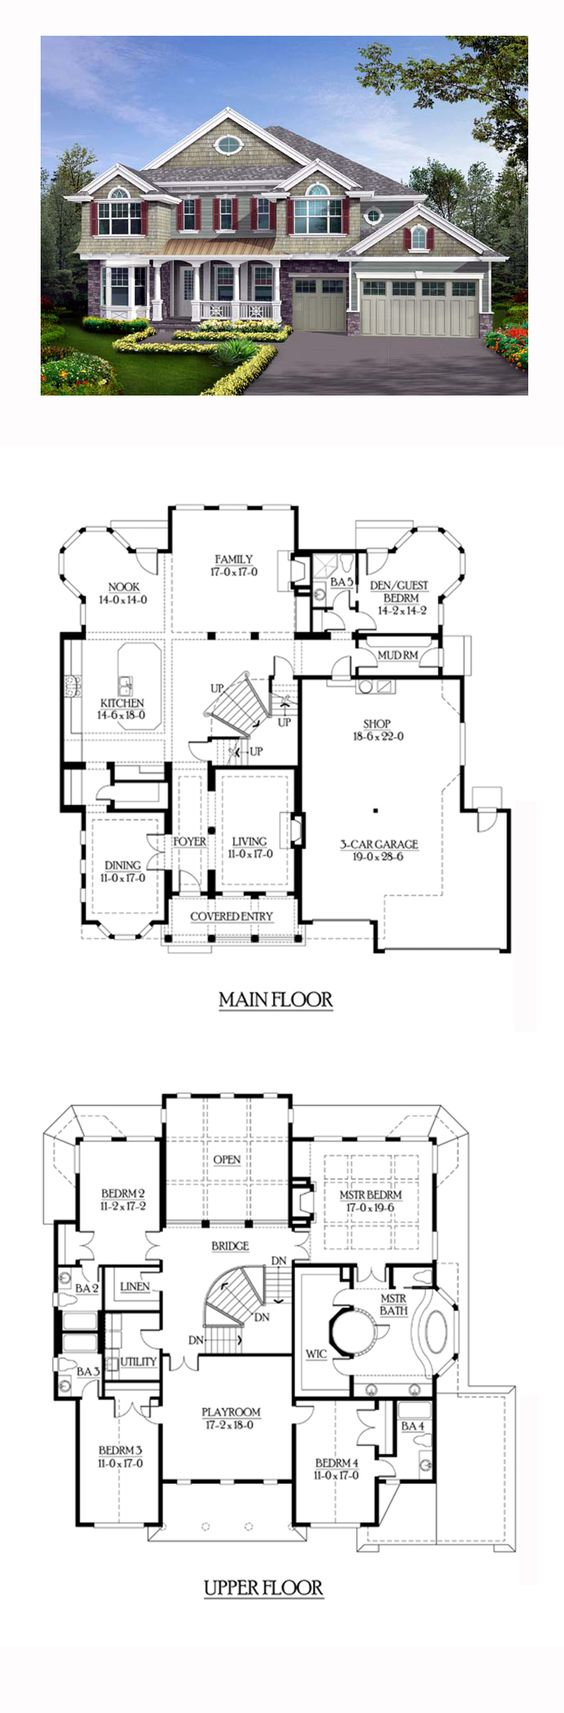 Shingle Style COOL House Plan ID: chp-39375 | Total Living Area: 4373 sq. ft., 4 bedrooms and 5 bathrooms. #shinglestylehome